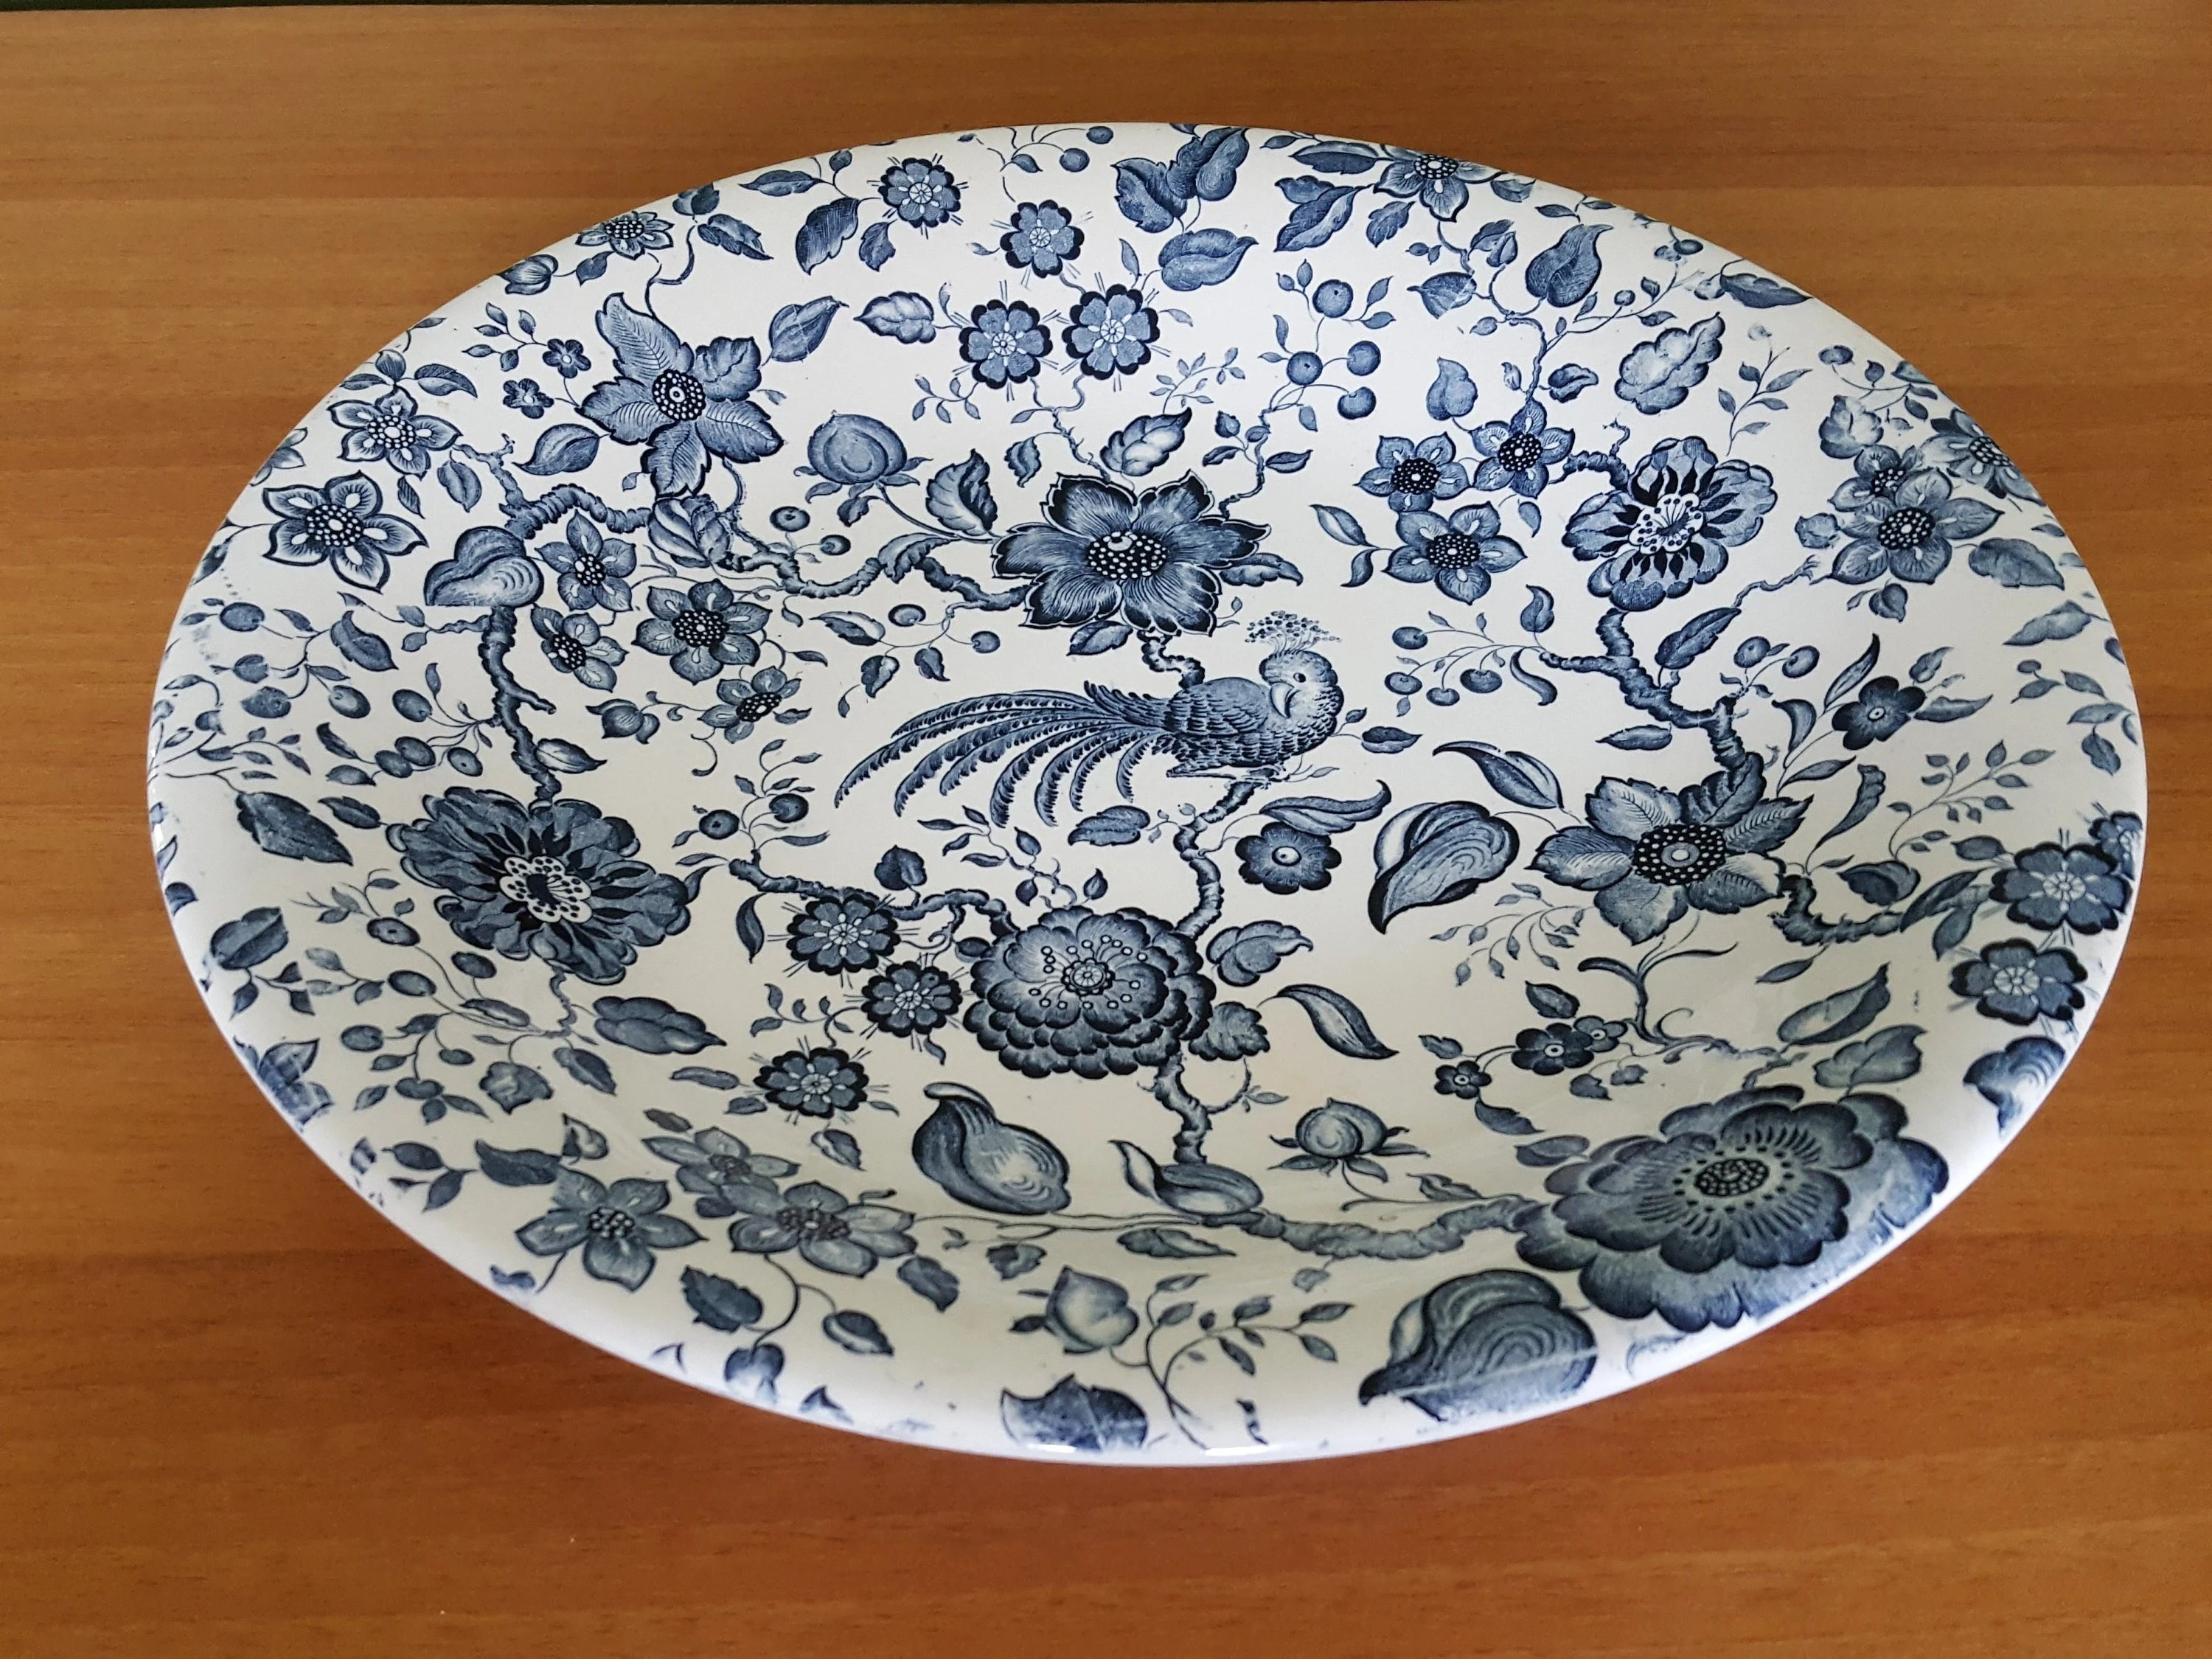 Villeroy Und Boch Saarland Beautiful Vintage Large Serving Plate Paradisio Villeroy Boch Mettlach Germany Blue Charger Floral Pattern Free Shipping Us Can Eur